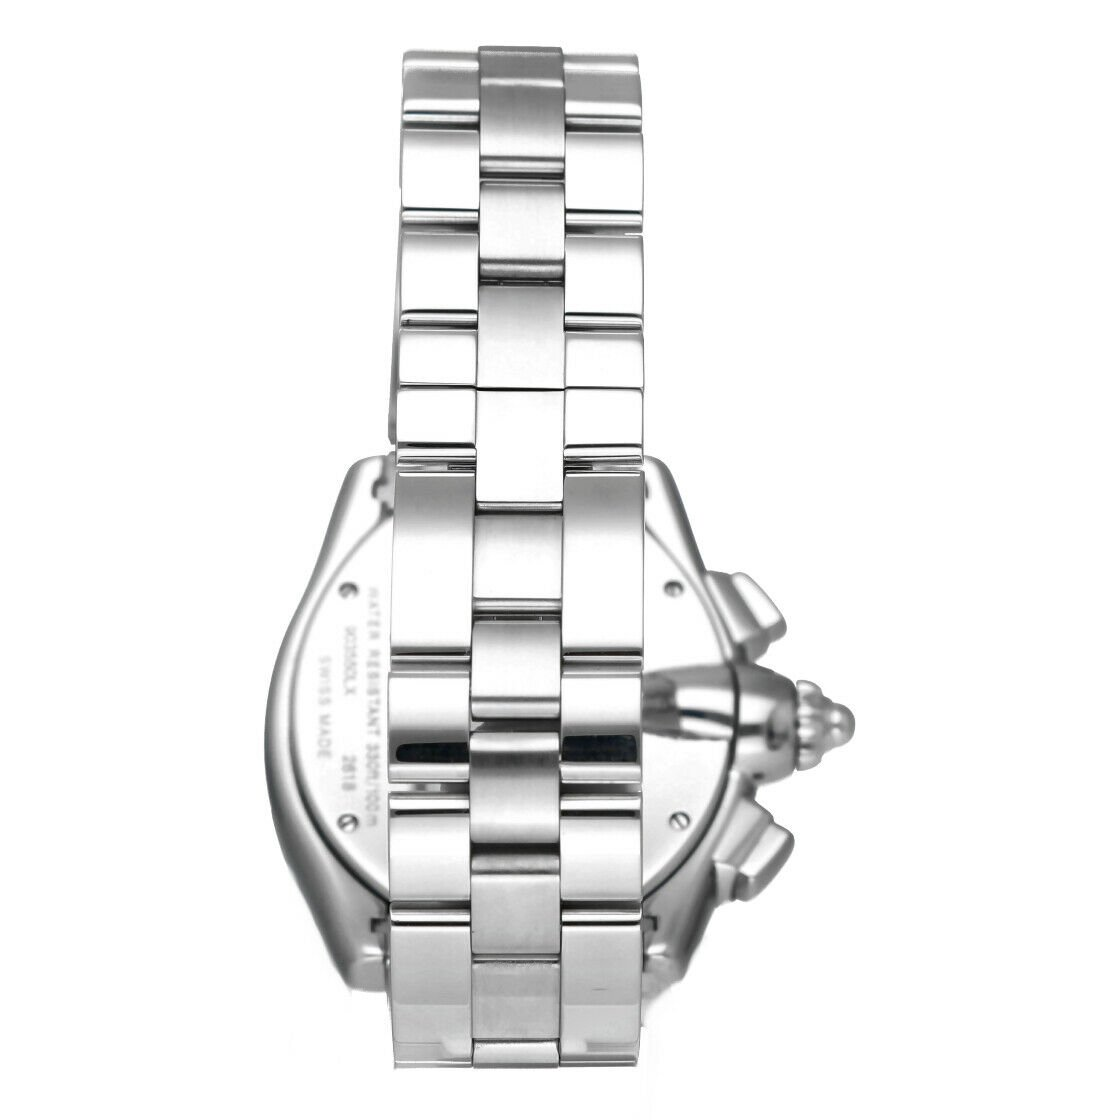 Cartier Roadster 2618 Chronograph XL Silver Dial Stainless Steel Mens Watch 114339442665 5